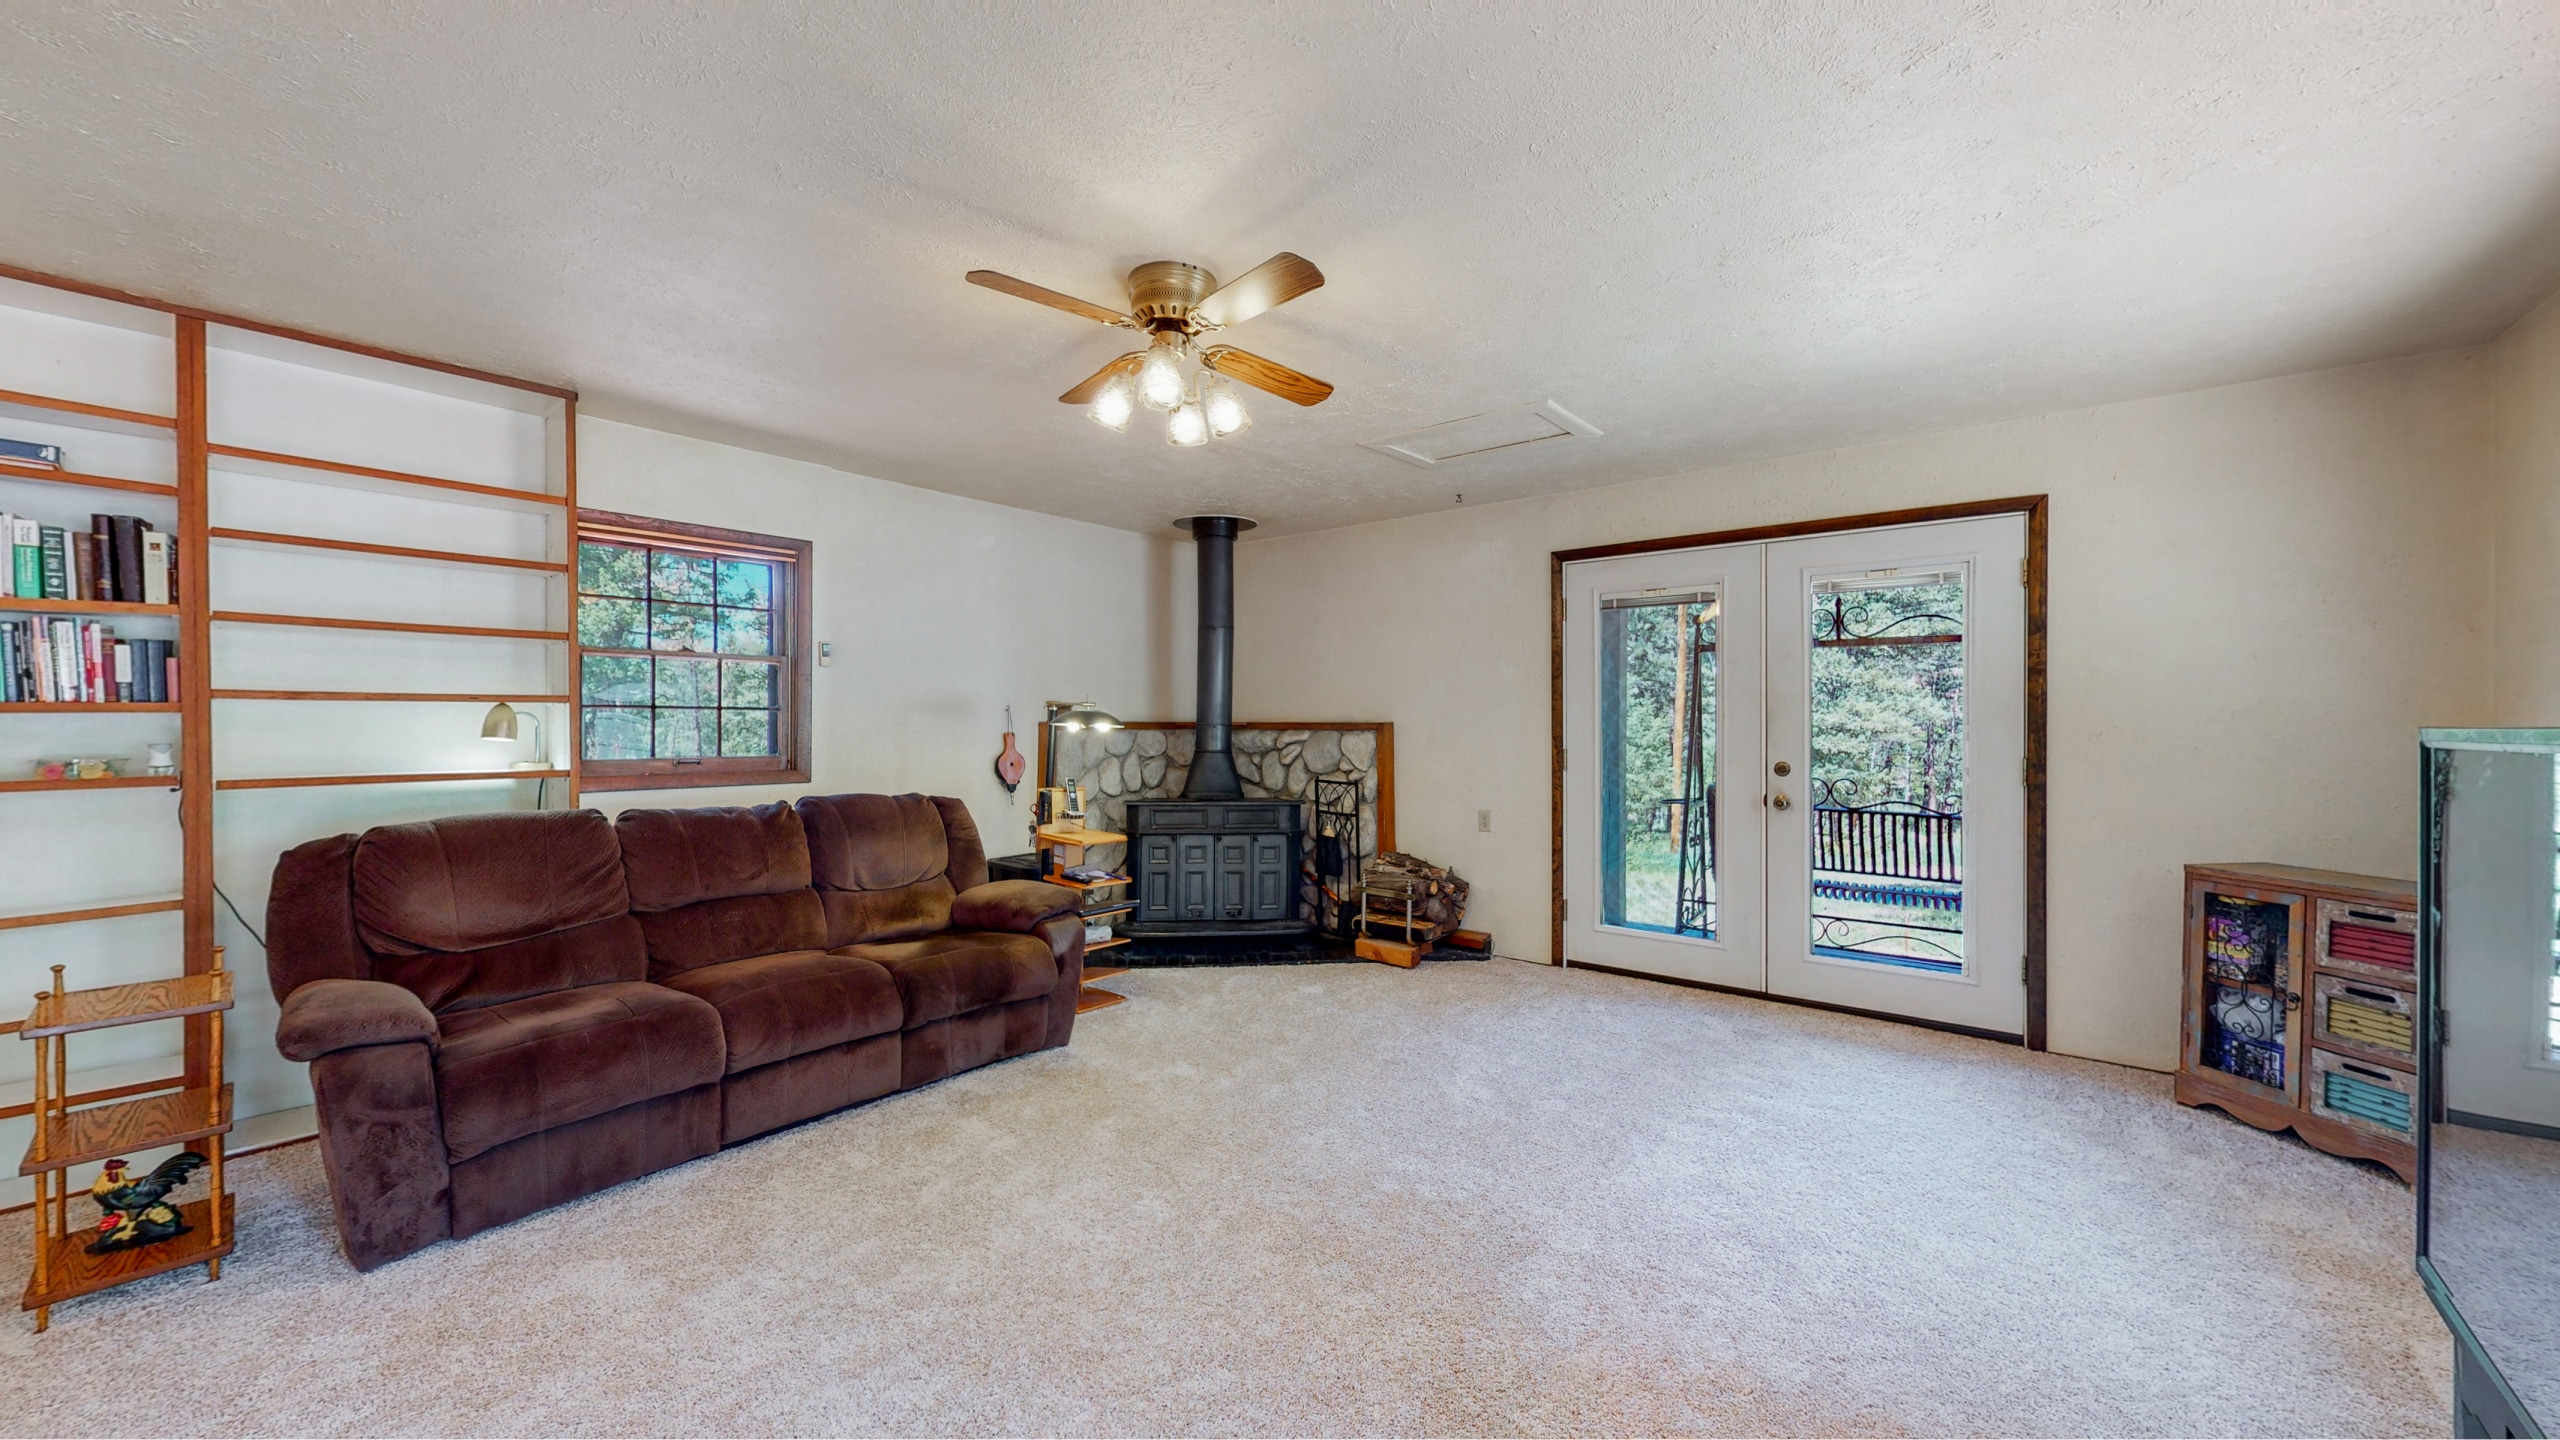 Large fireplace in family room makes for cozy winters in Evergreen